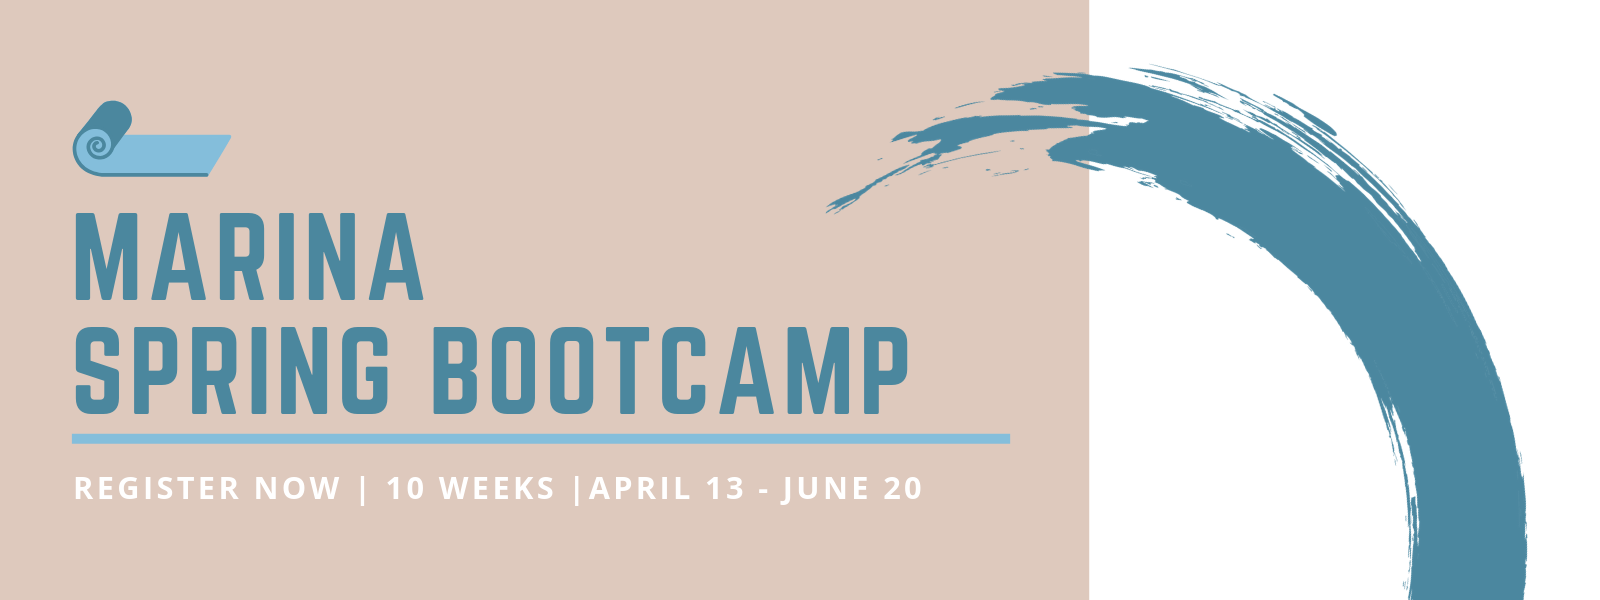 Spring Bootcamp